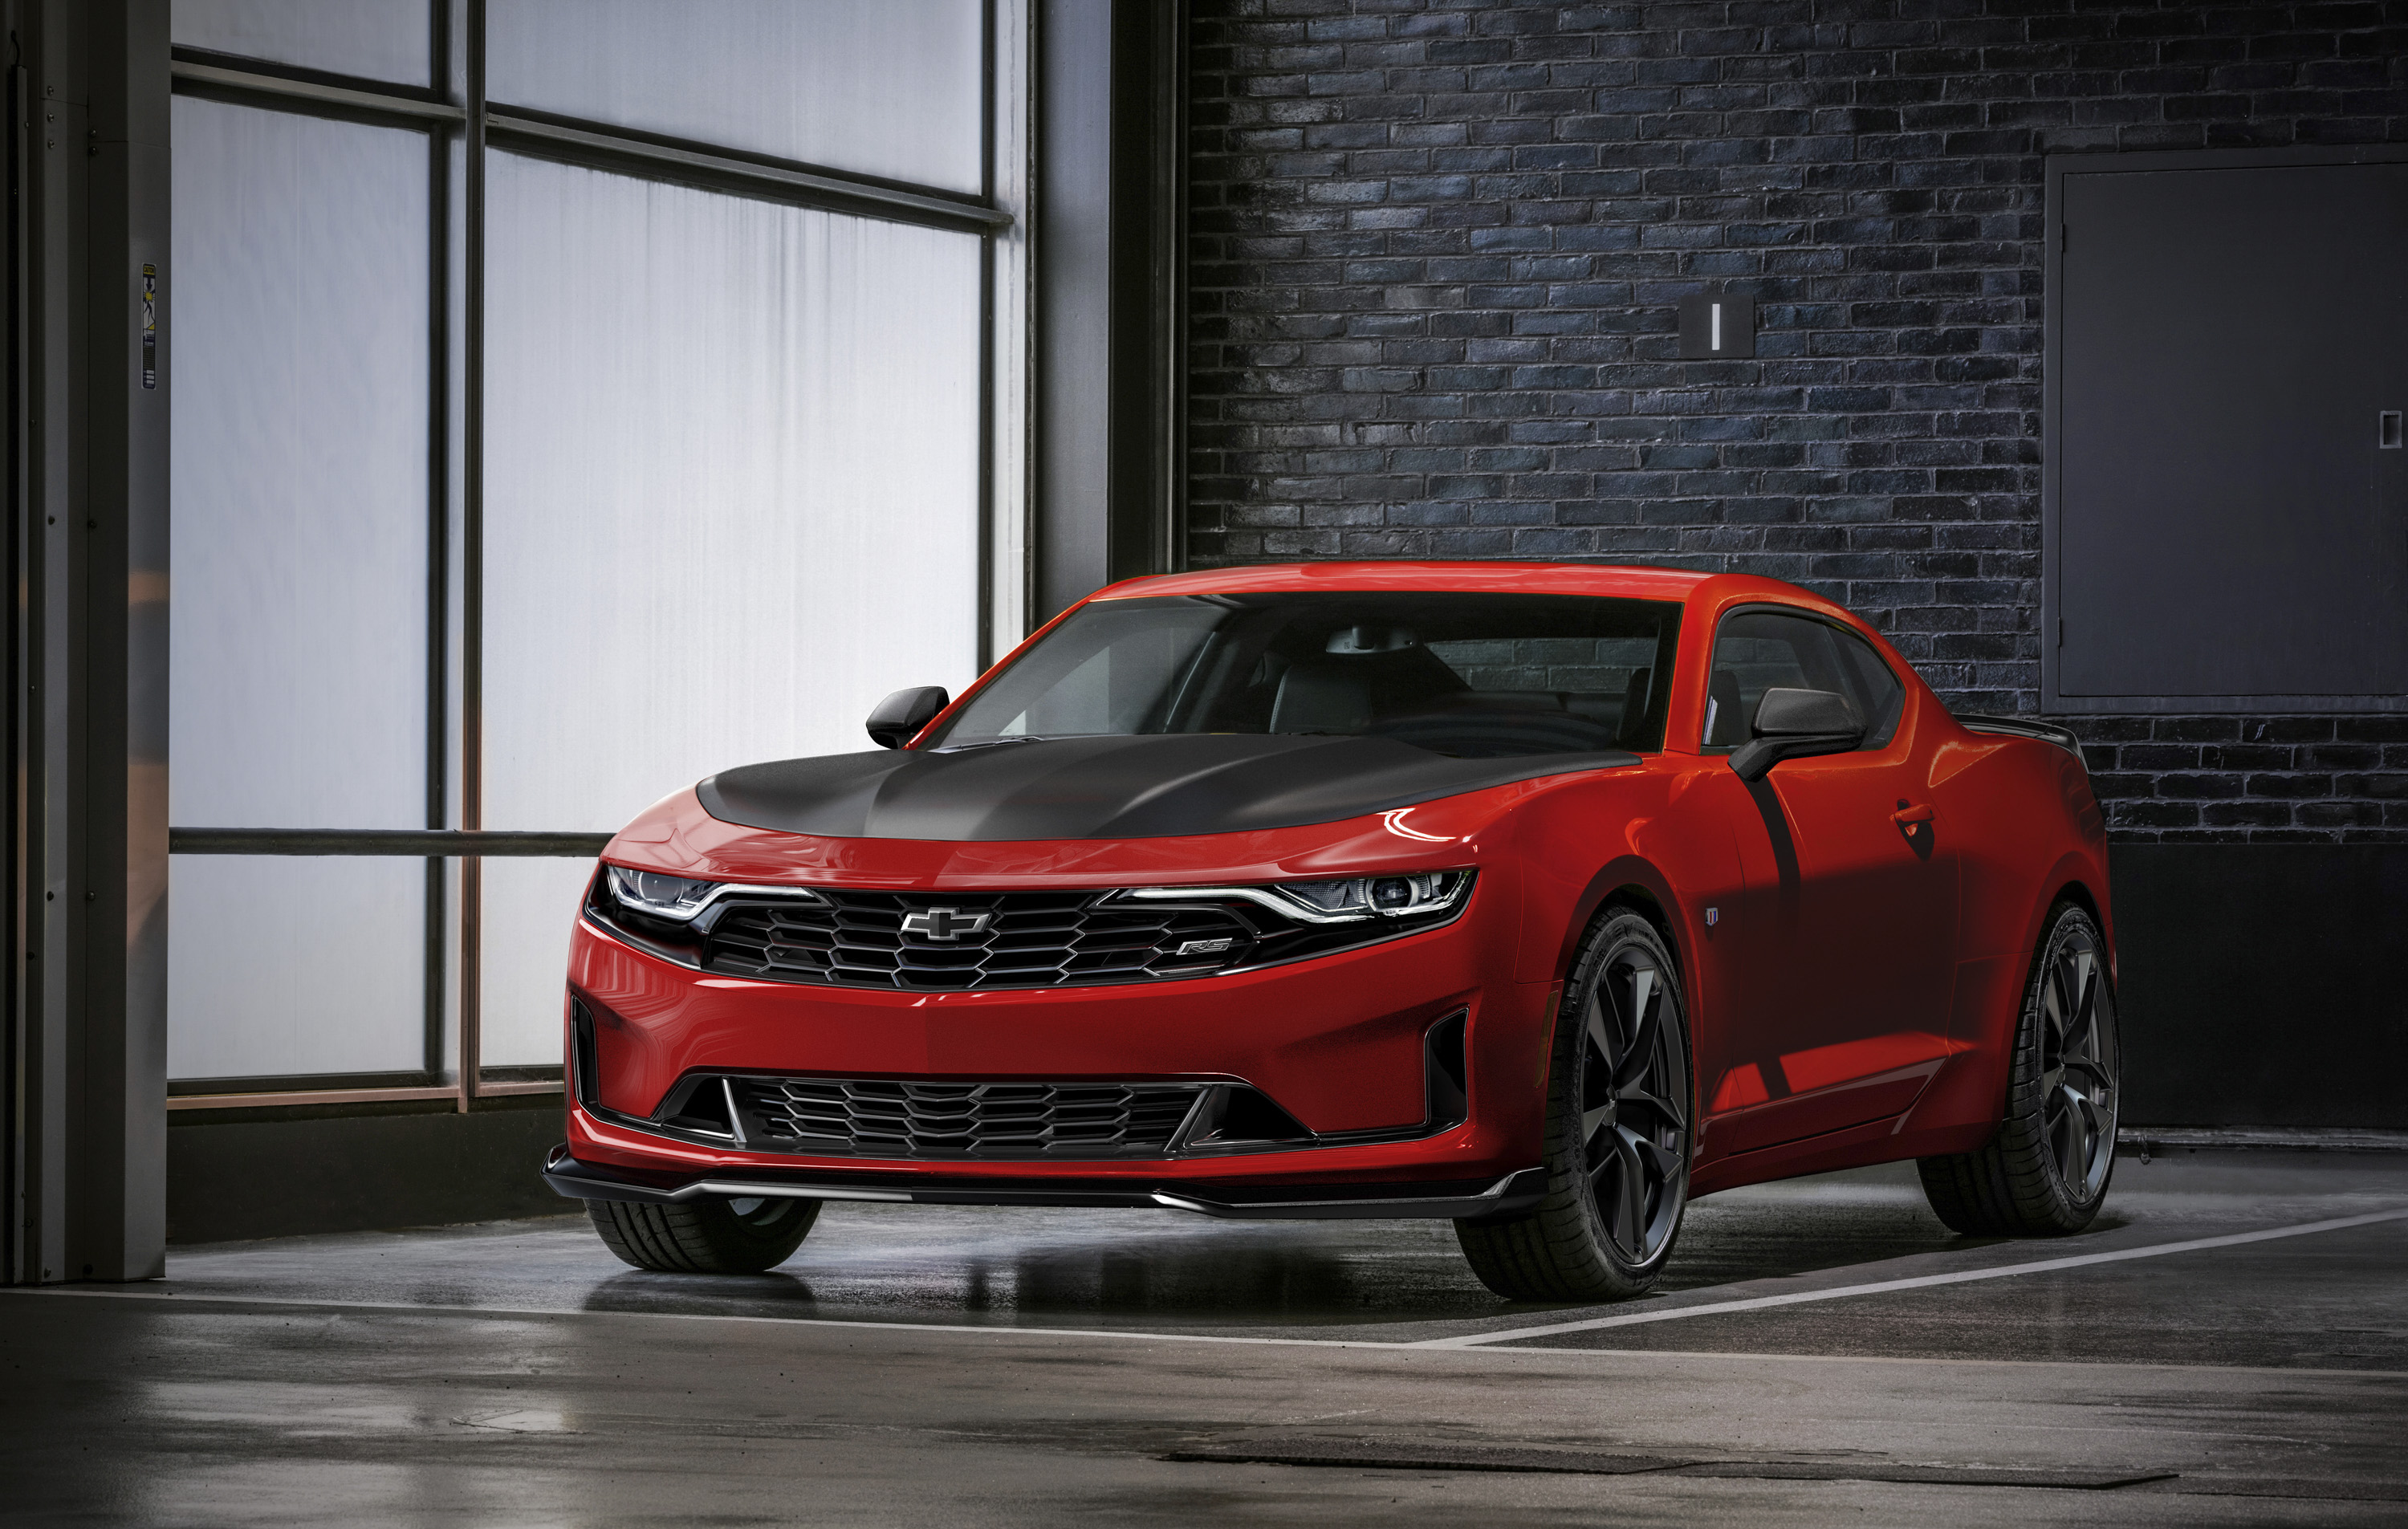 Top 10 Most Blasphemous Models To Turn Into An Ev Speed 1968 Chevrolet Camaro Rs Dub Edition